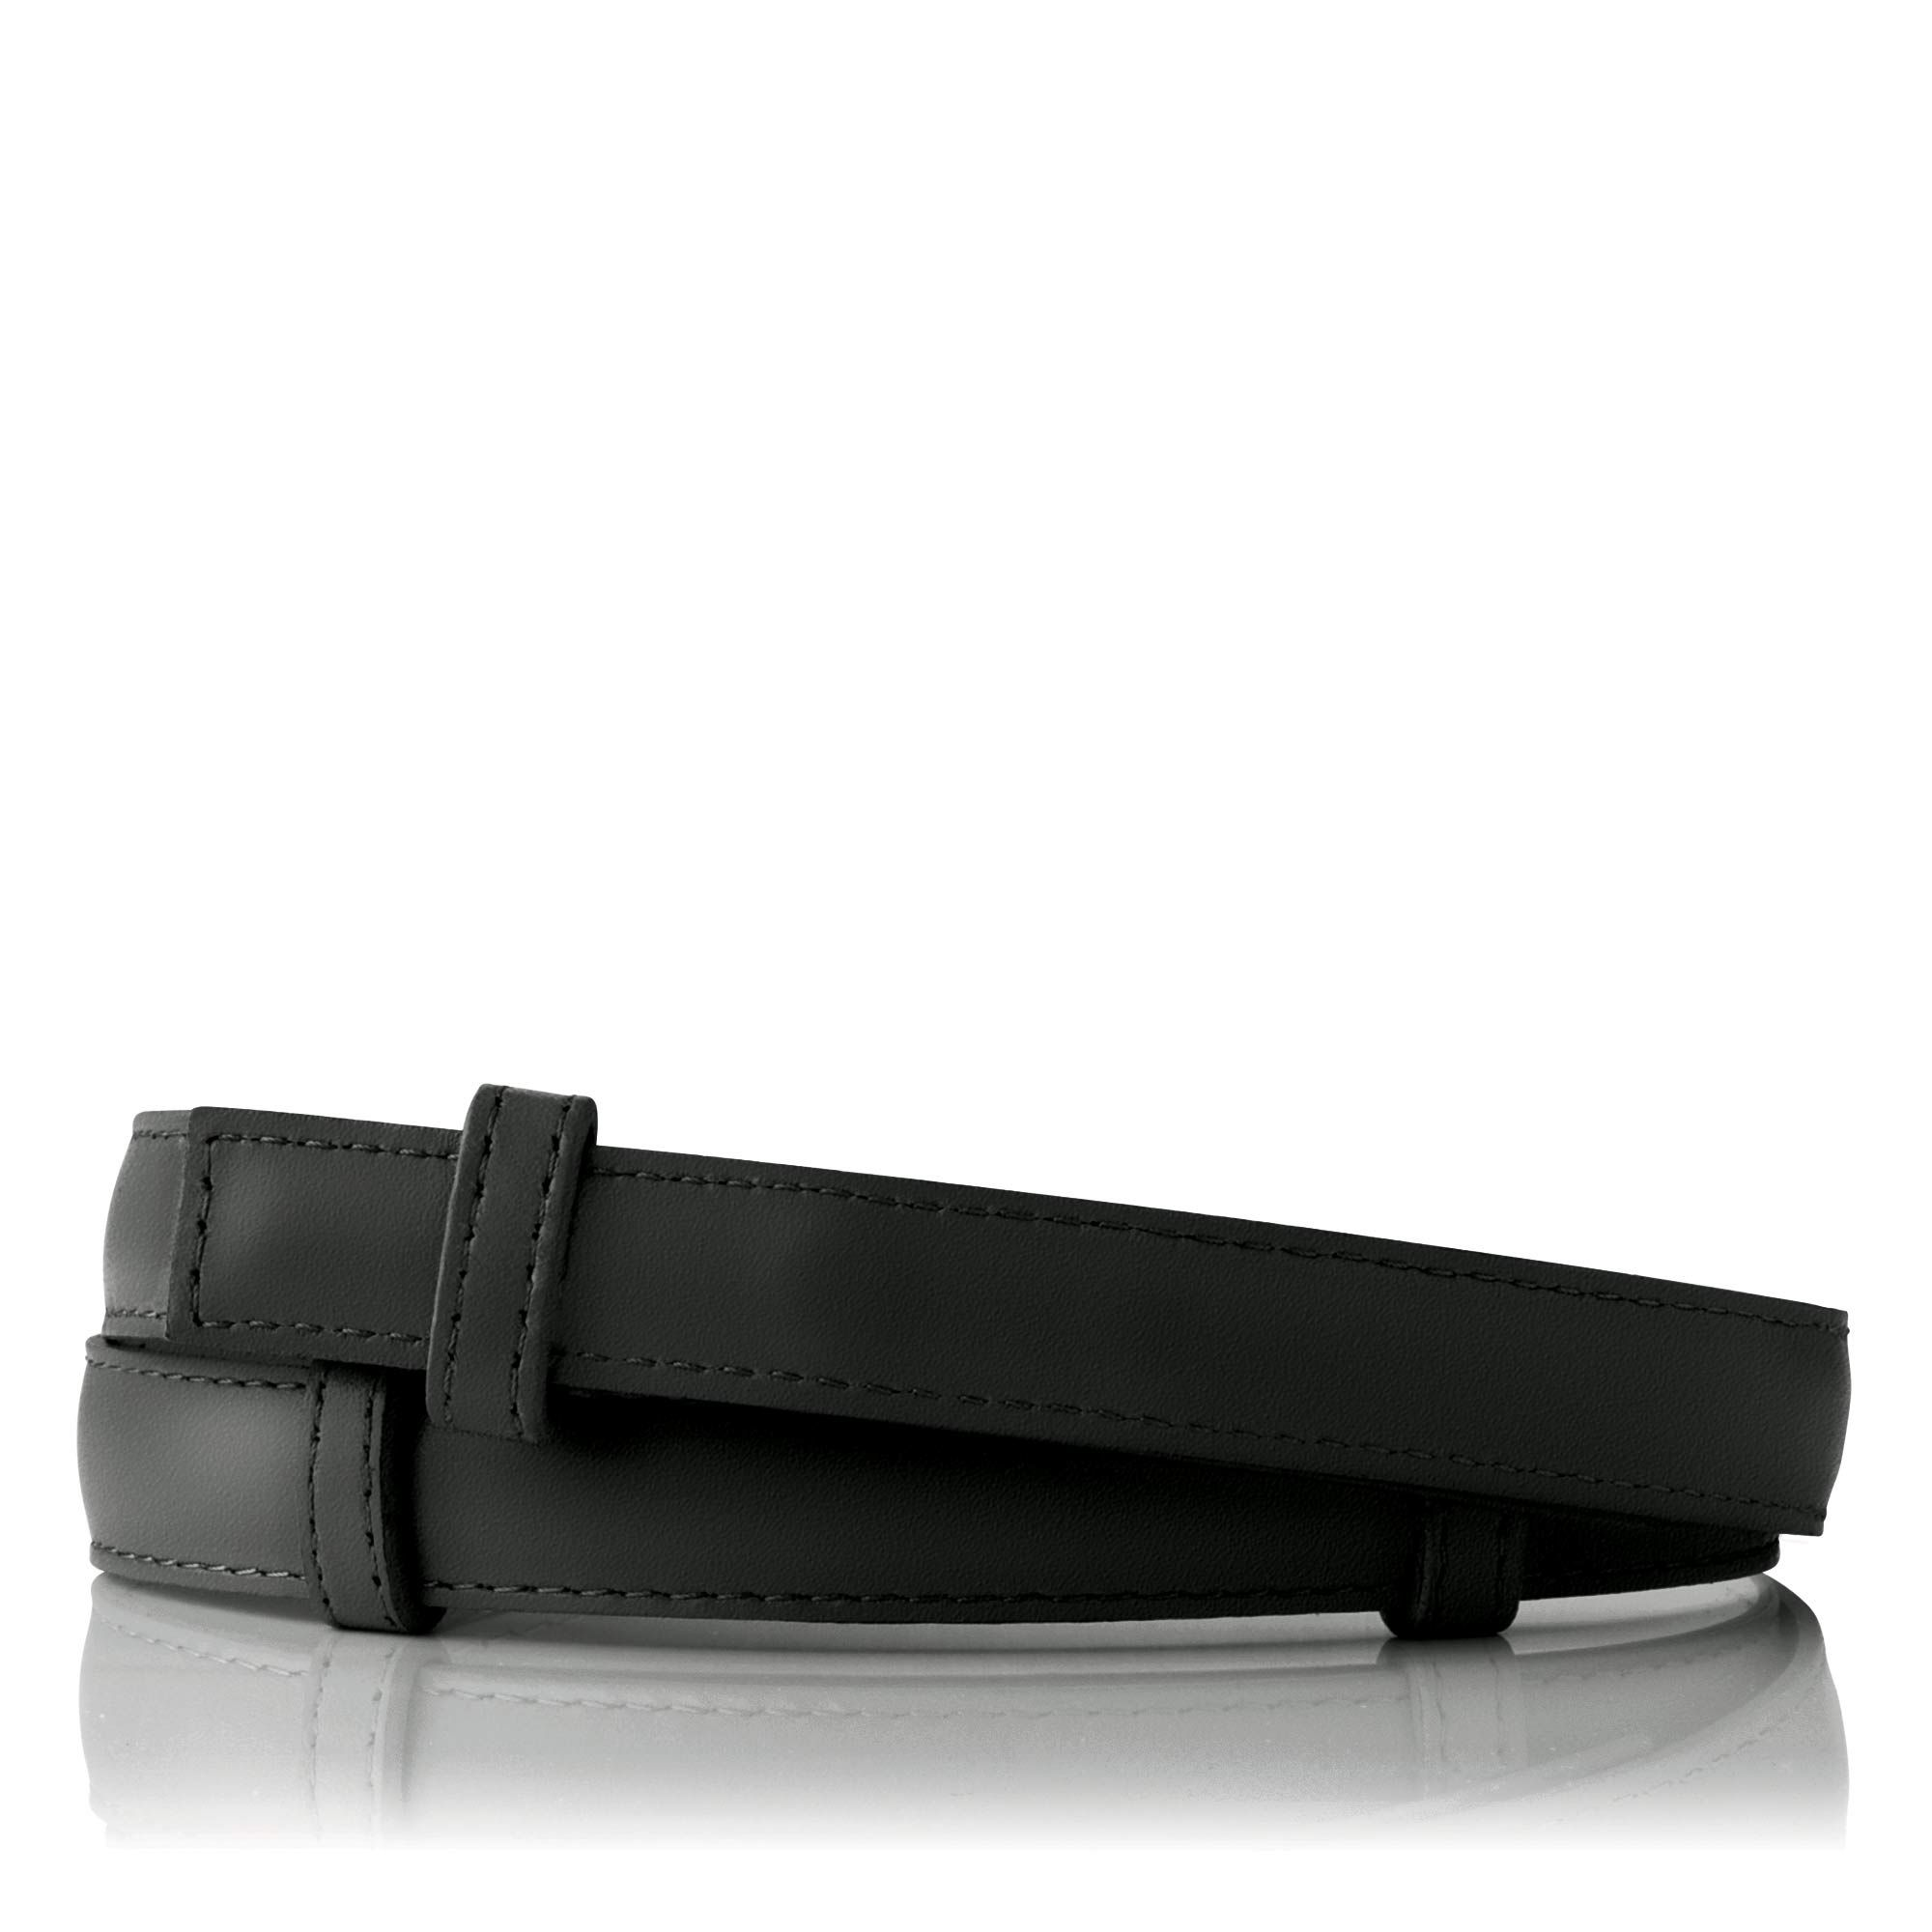 Alex adjustale patent leather belt